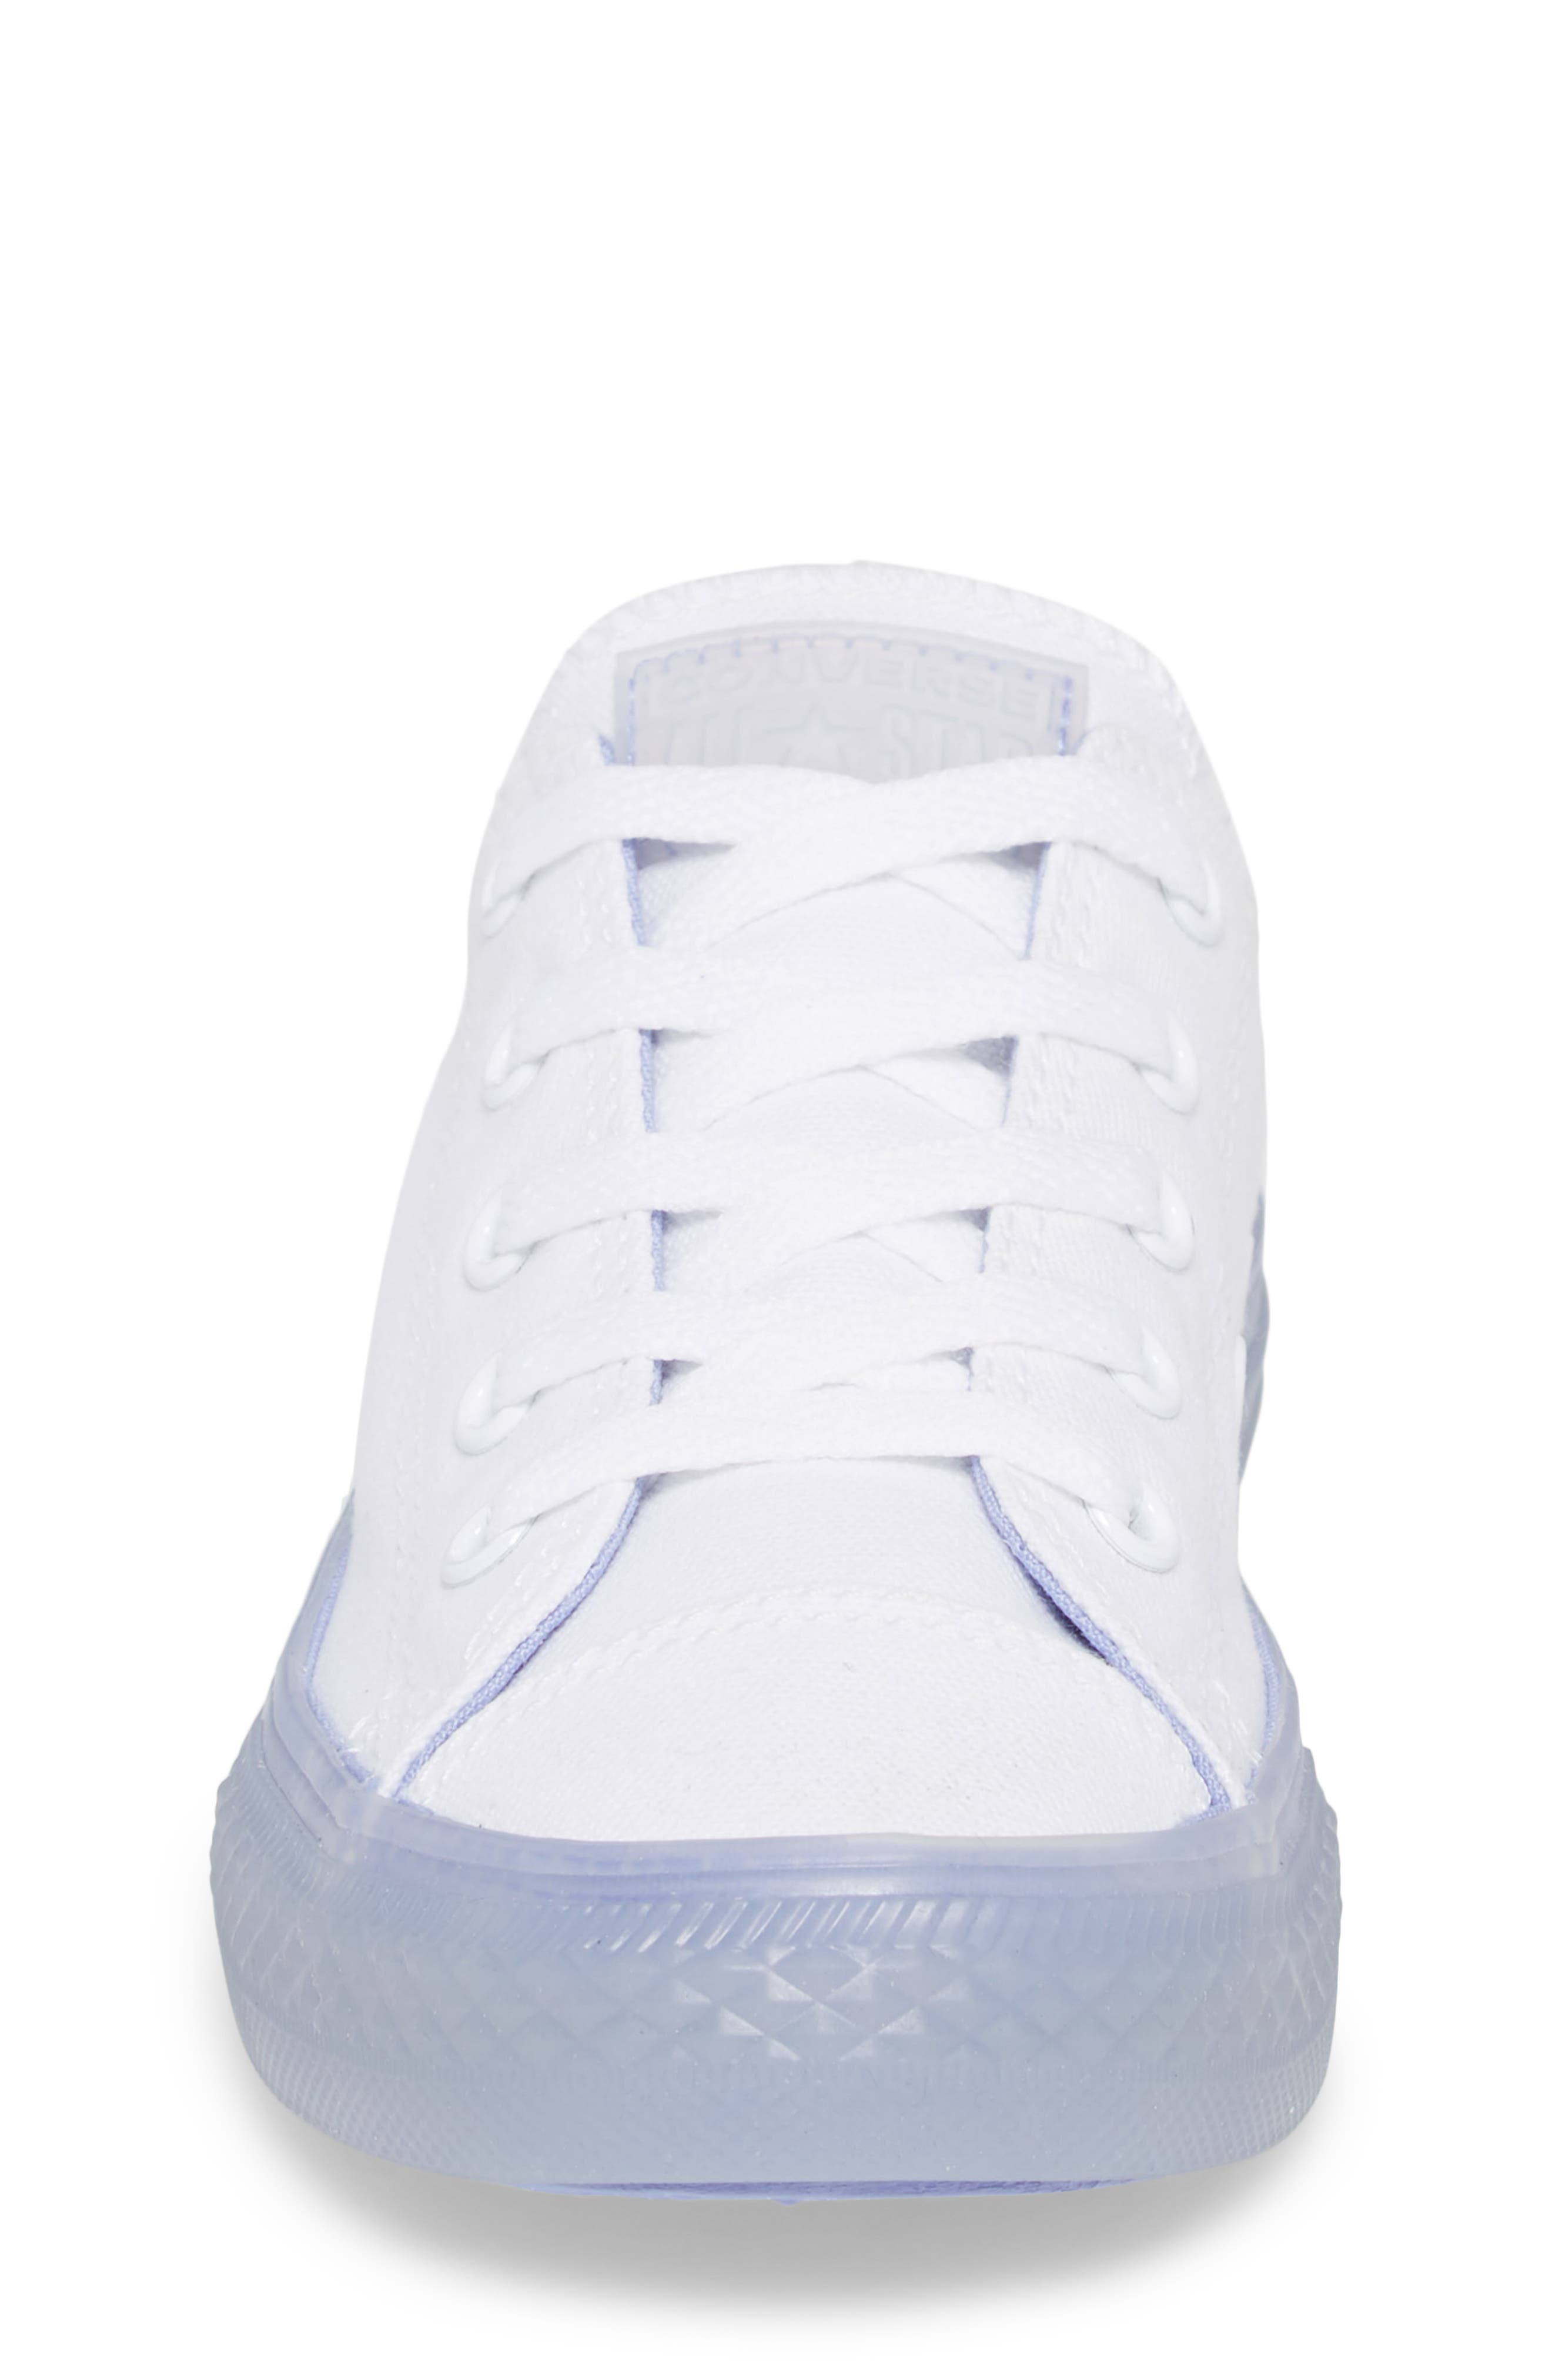 Chuck Taylor<sup>®</sup> All Star<sup>®</sup> Jelly Low Top Sneaker,                             Alternate thumbnail 4, color,                             503